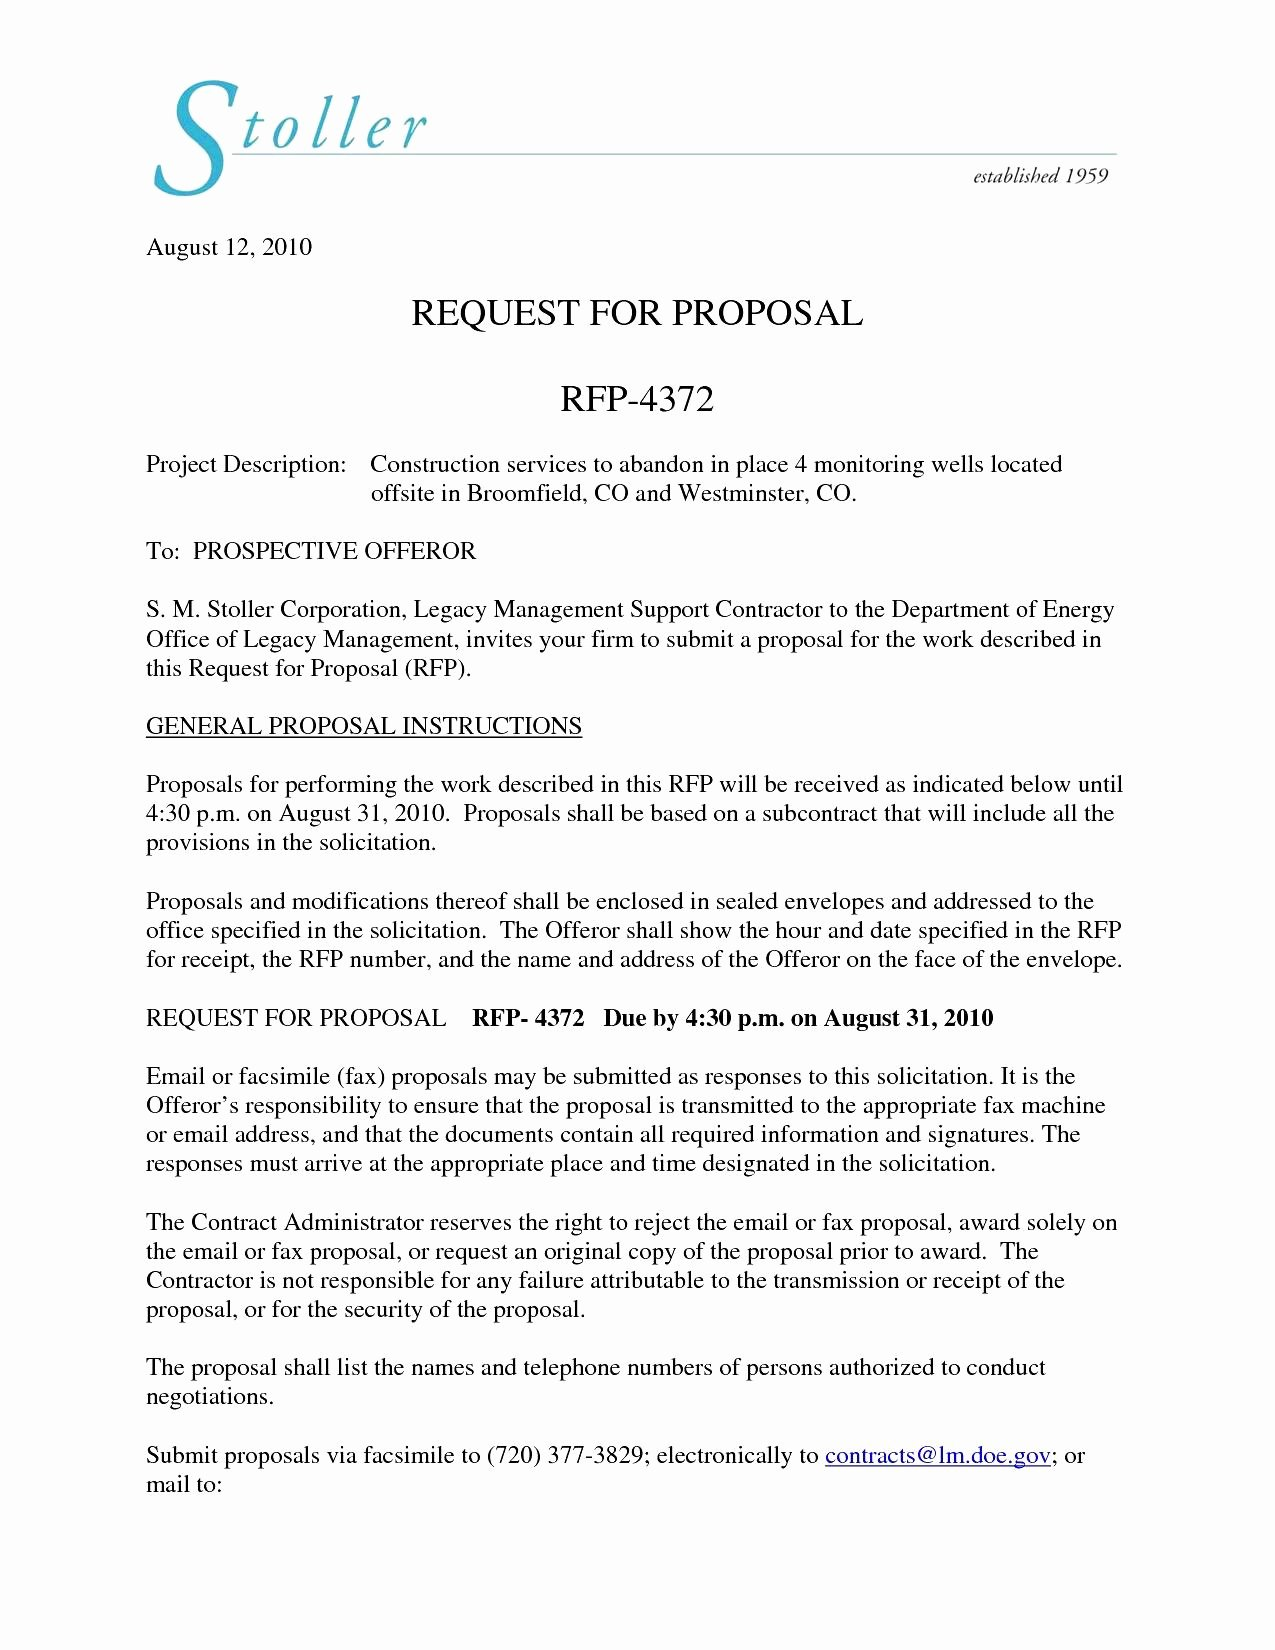 Sample Proposal Cover Letter Inspirational 14 15 Cover Letter for Rfp Response